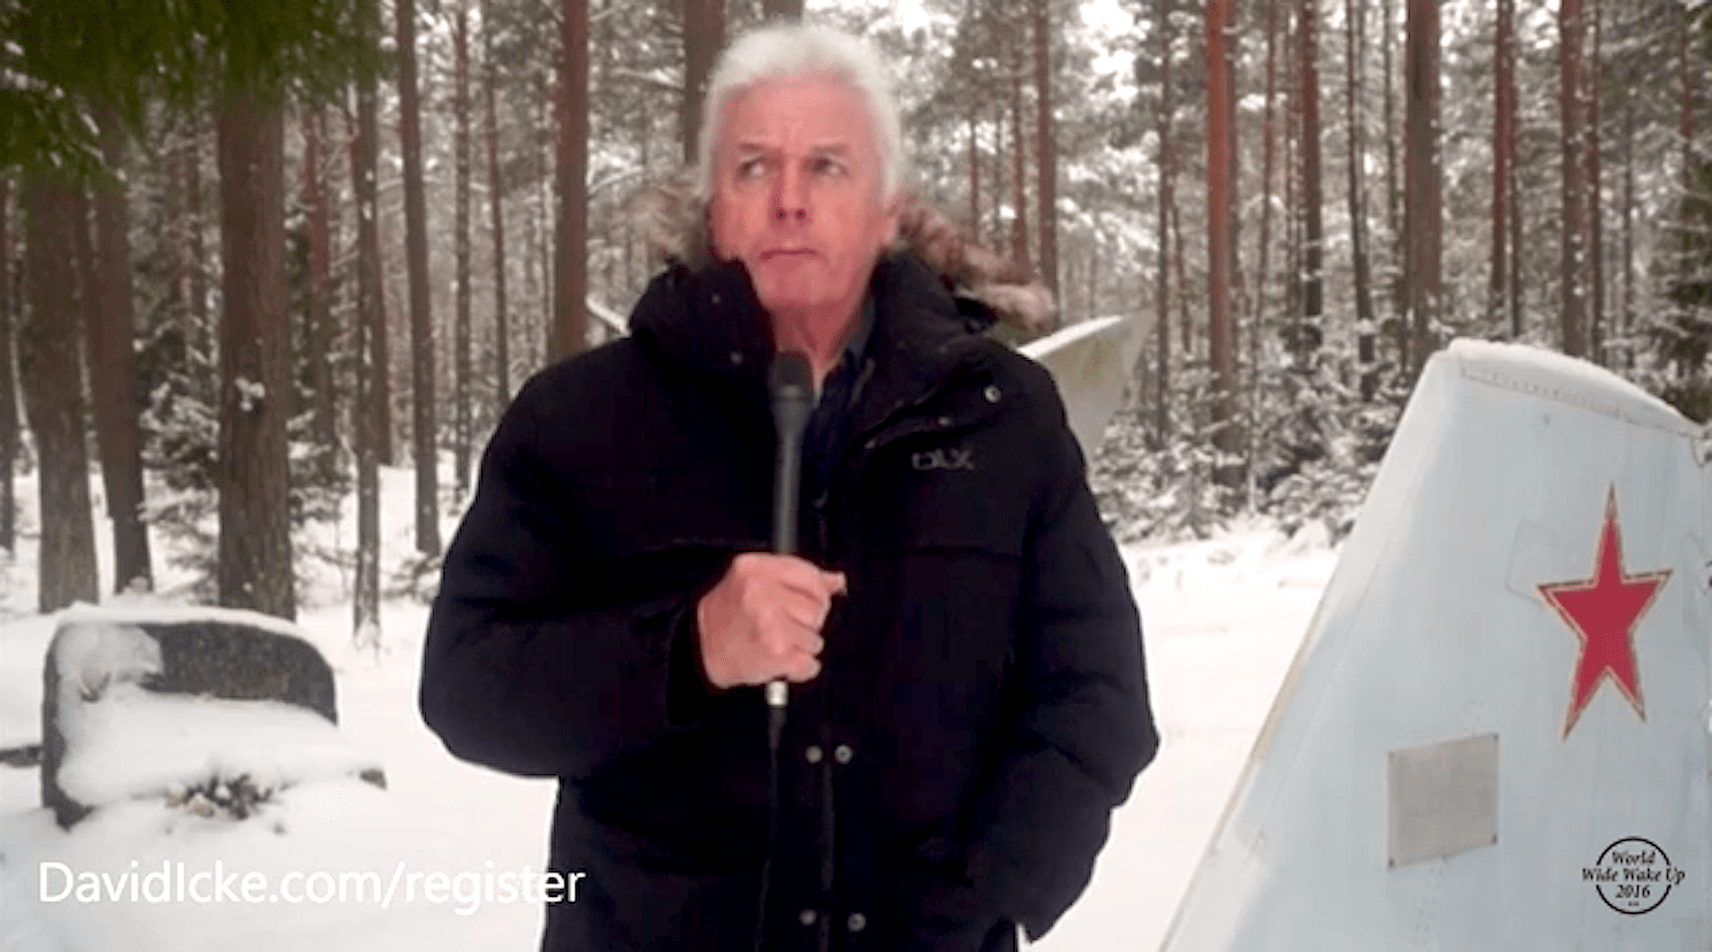 David Icke in Estonia